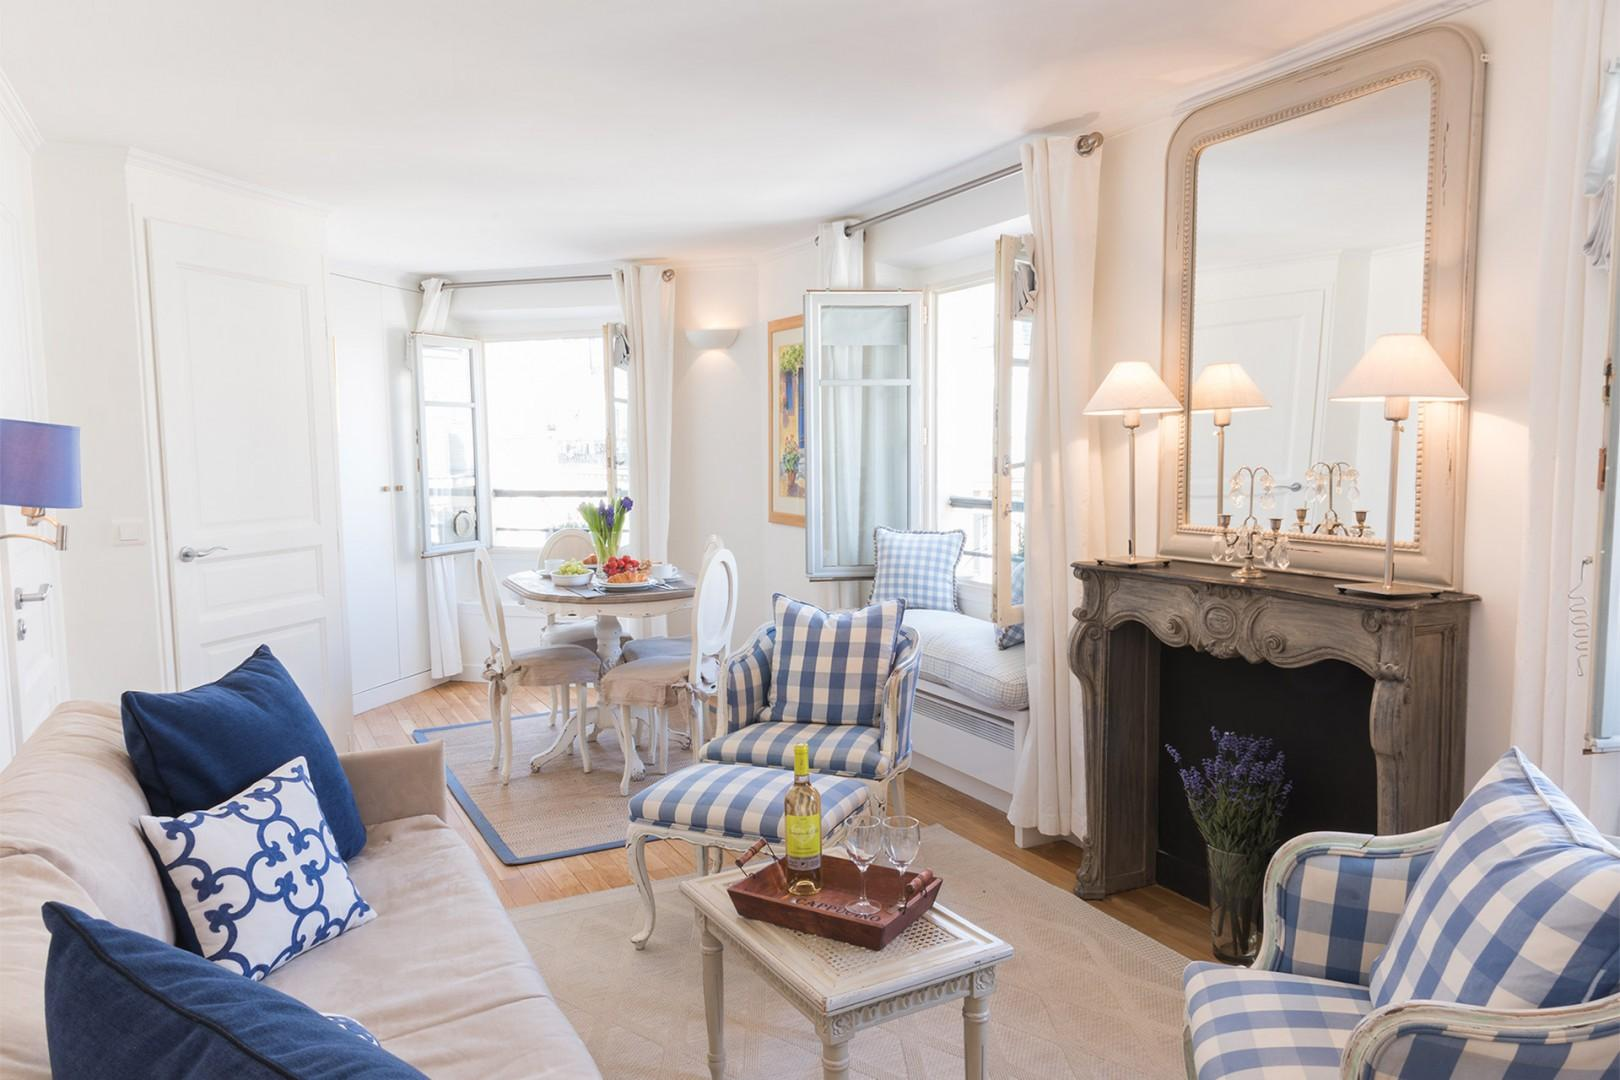 Welcome to our charming Pomerol apartment!